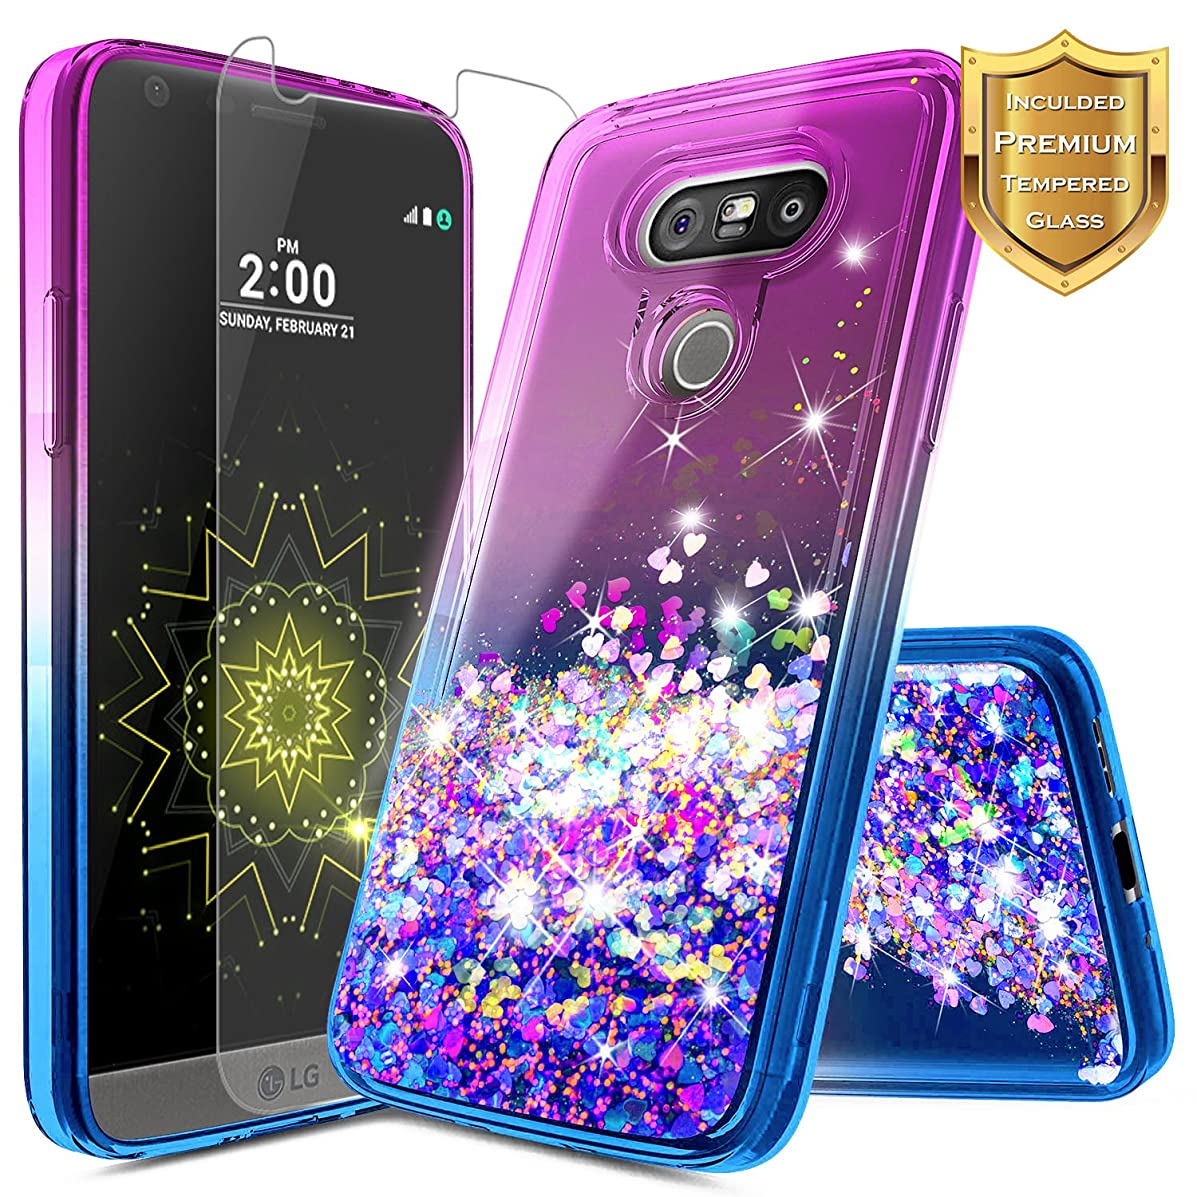 LG G5 Case with Tempered Glass Screen Protector for Girls Women Kids, NageBee Glitter Liquid Sparkle Bling Floating Waterfall Shockproof Cute Case for LG G5 -Purple/Blue